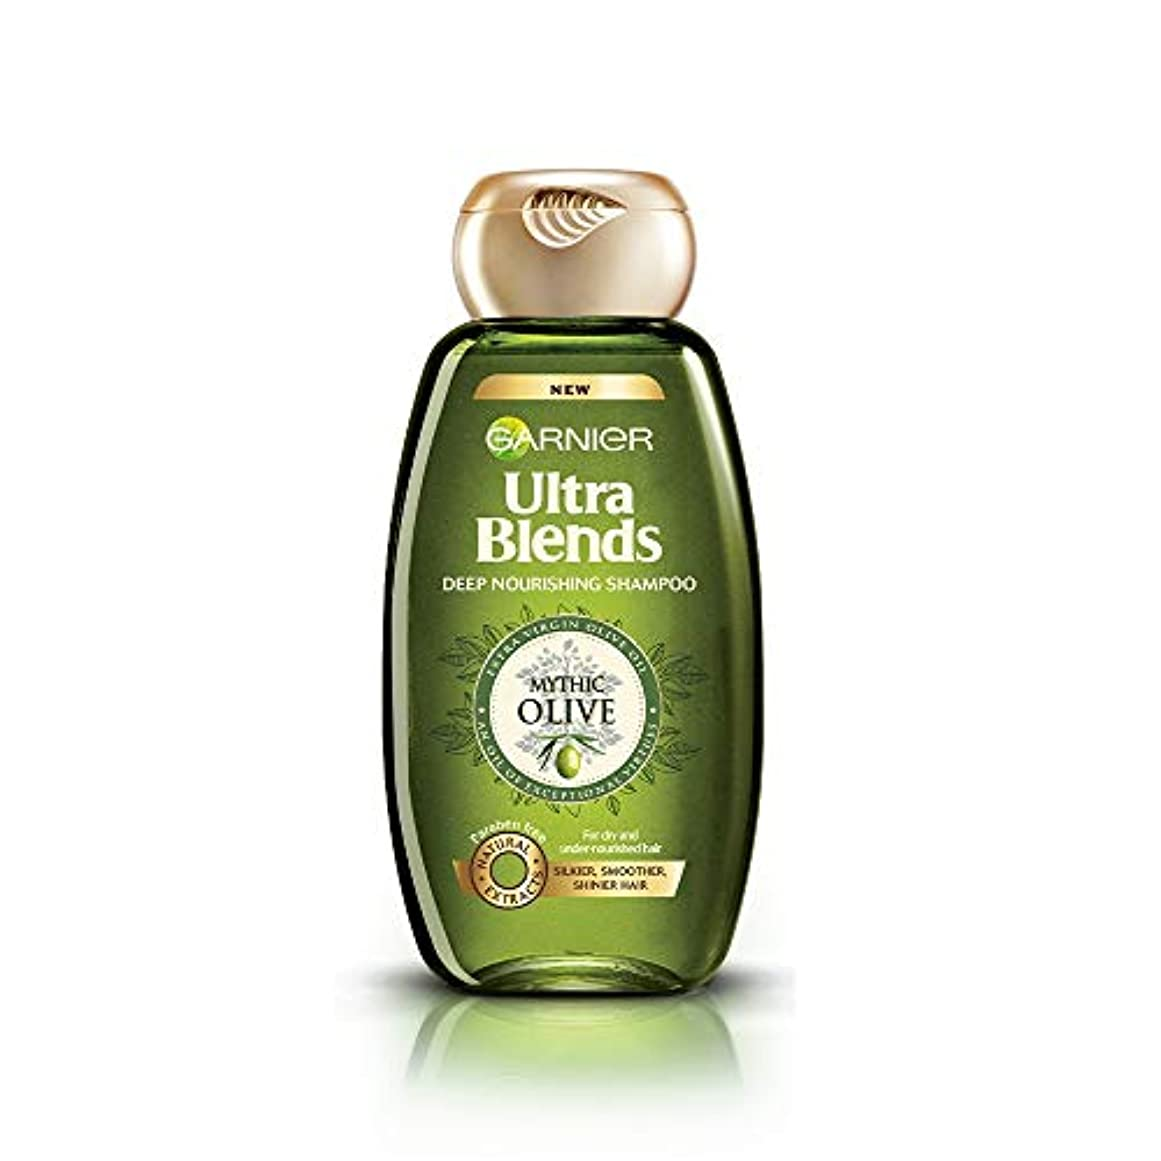 聖人仮定、想定。推測逃げるGarnier Ultra Blends Shampoo, Mythic Olive, 360ml